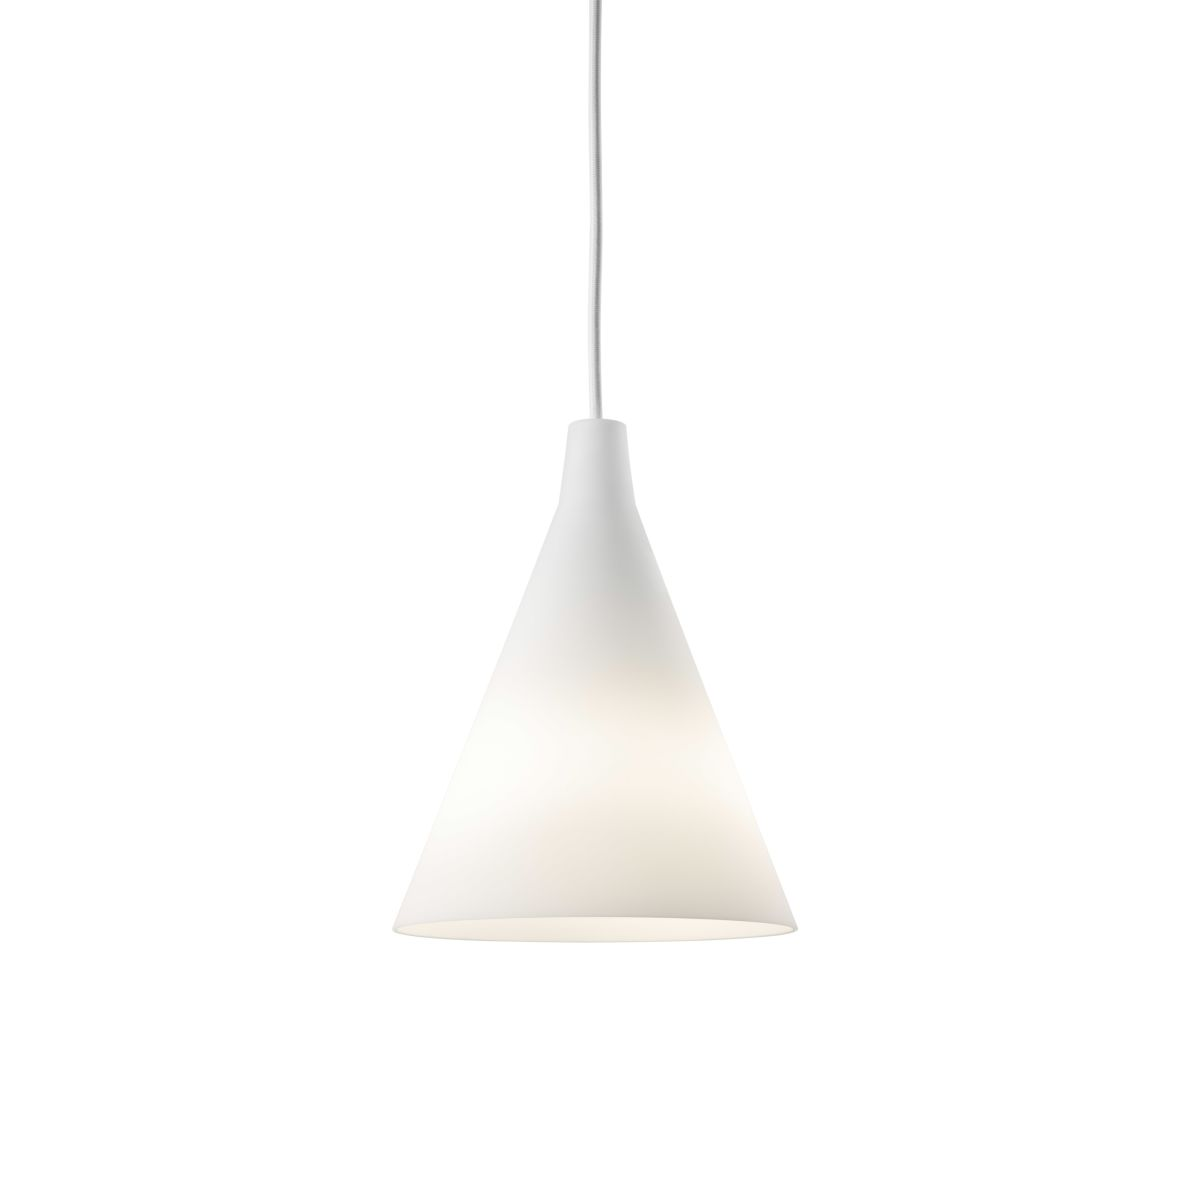 Pendant Light TW002 _Triennale__on_WEB